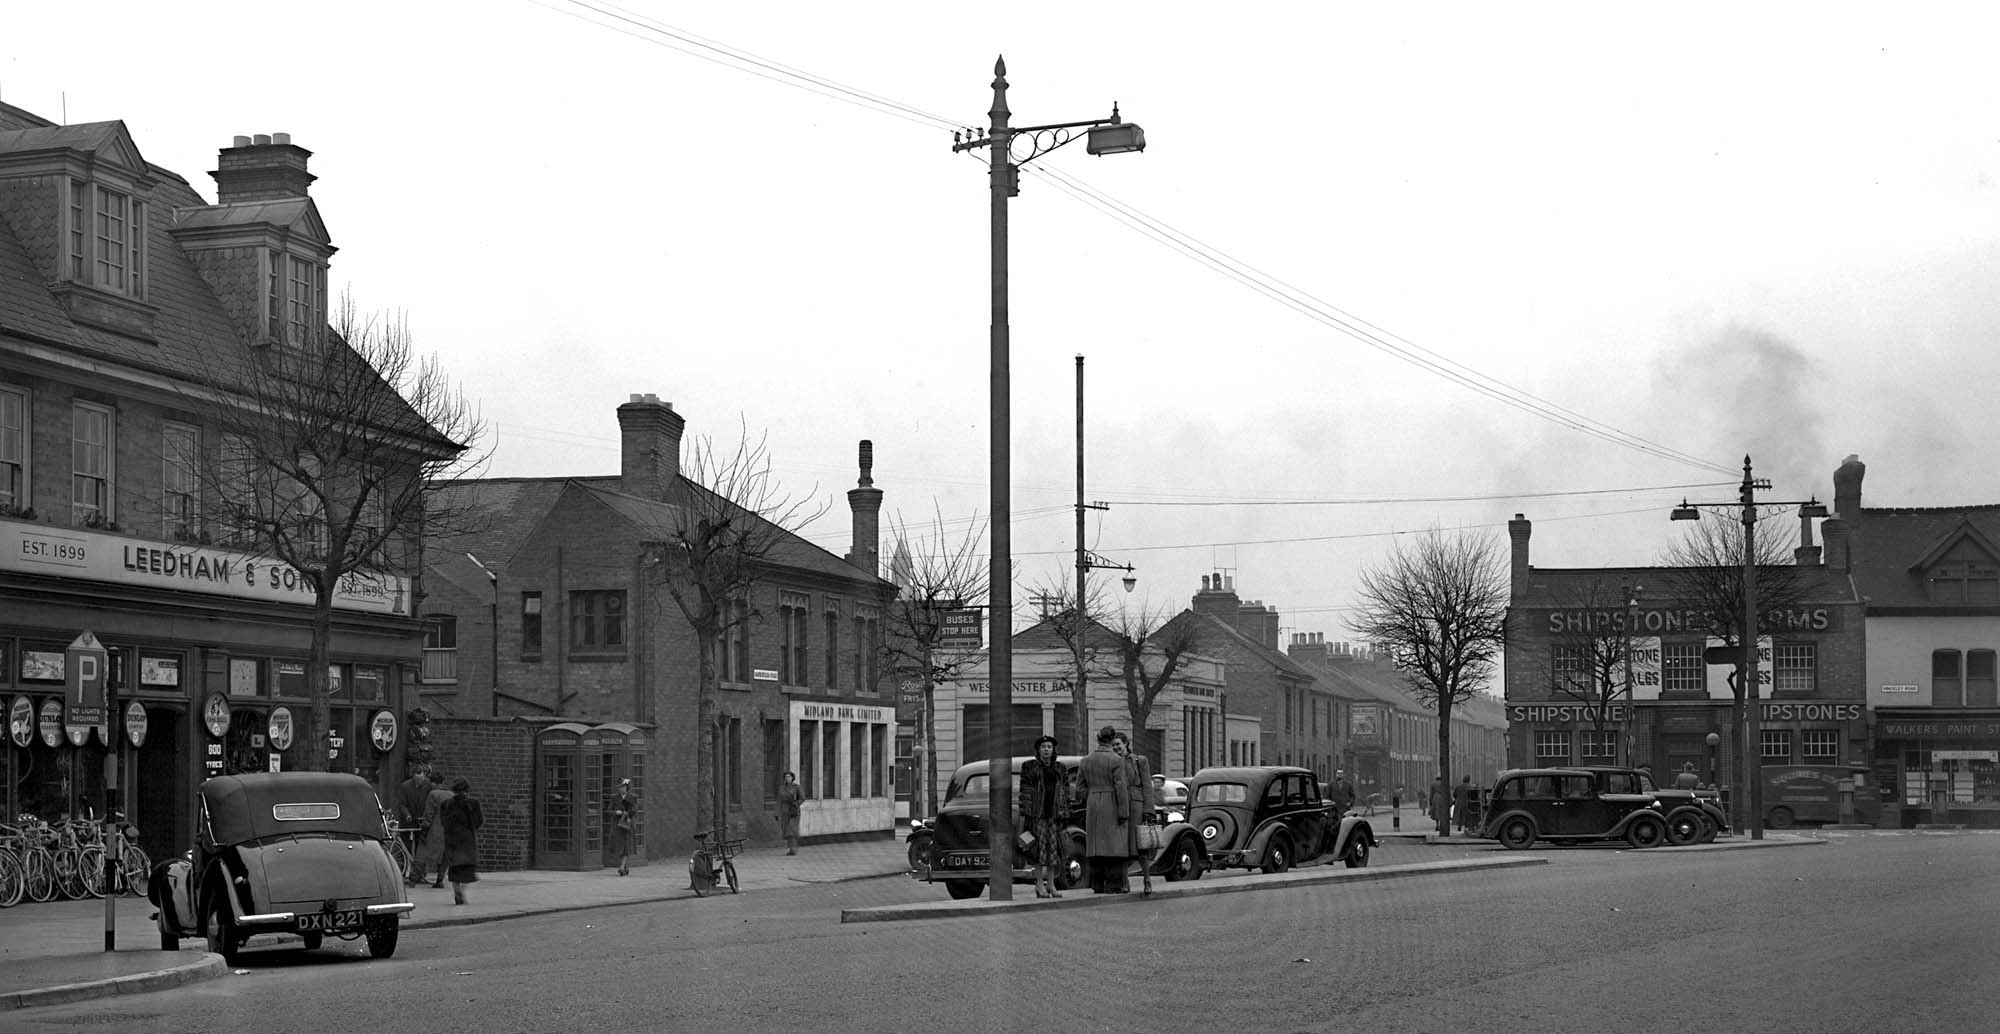 Narborough Road, seen here in 1952 is said to be the most diverse street in the UK -